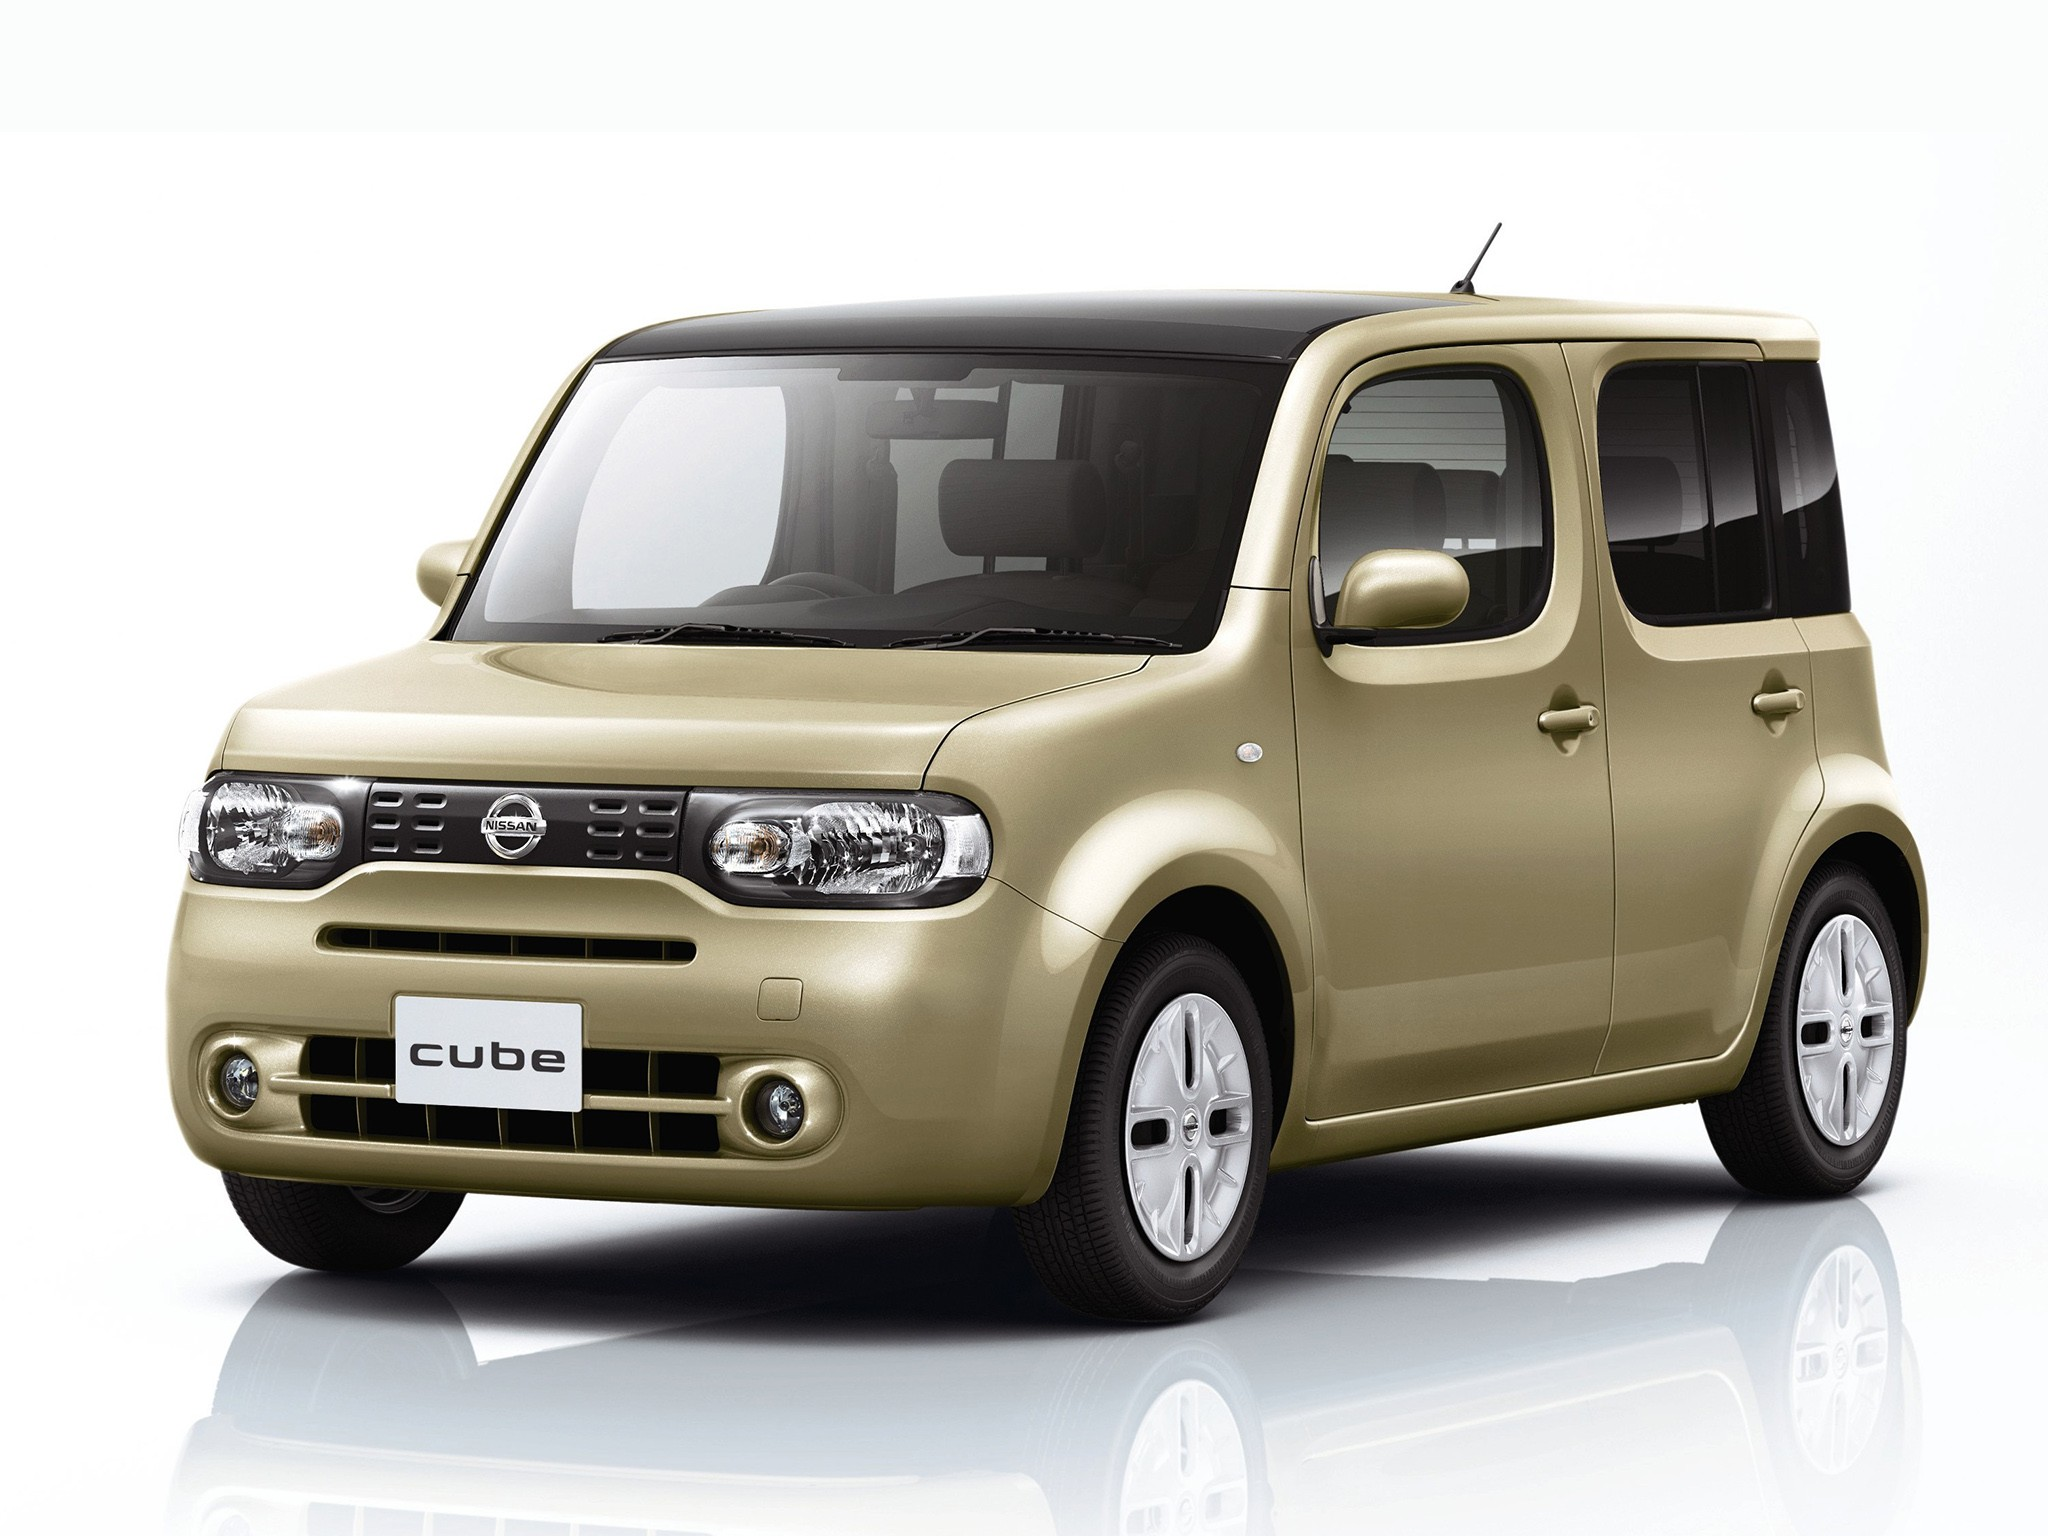 nissan cube specs 2008 2009 2010 2011 2012 2013. Black Bedroom Furniture Sets. Home Design Ideas